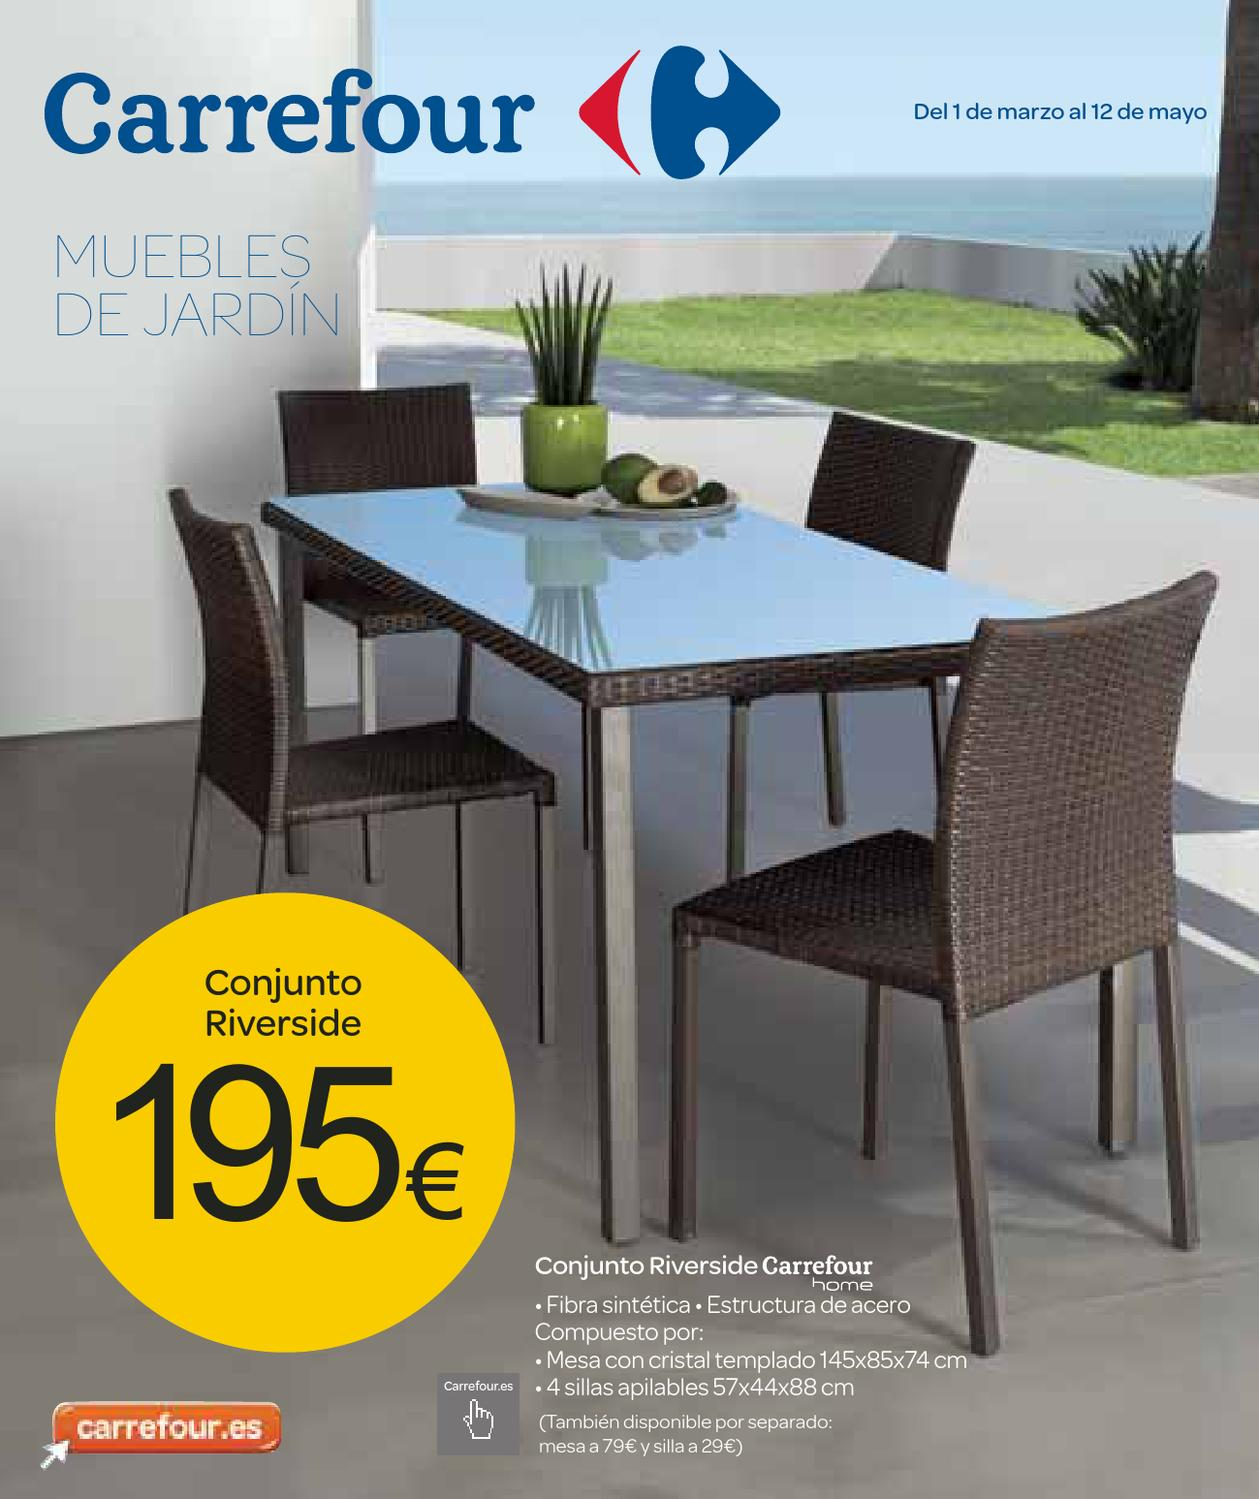 Issuu catalogo de muebles de jardin carrefour by - Muebles de jardin ...